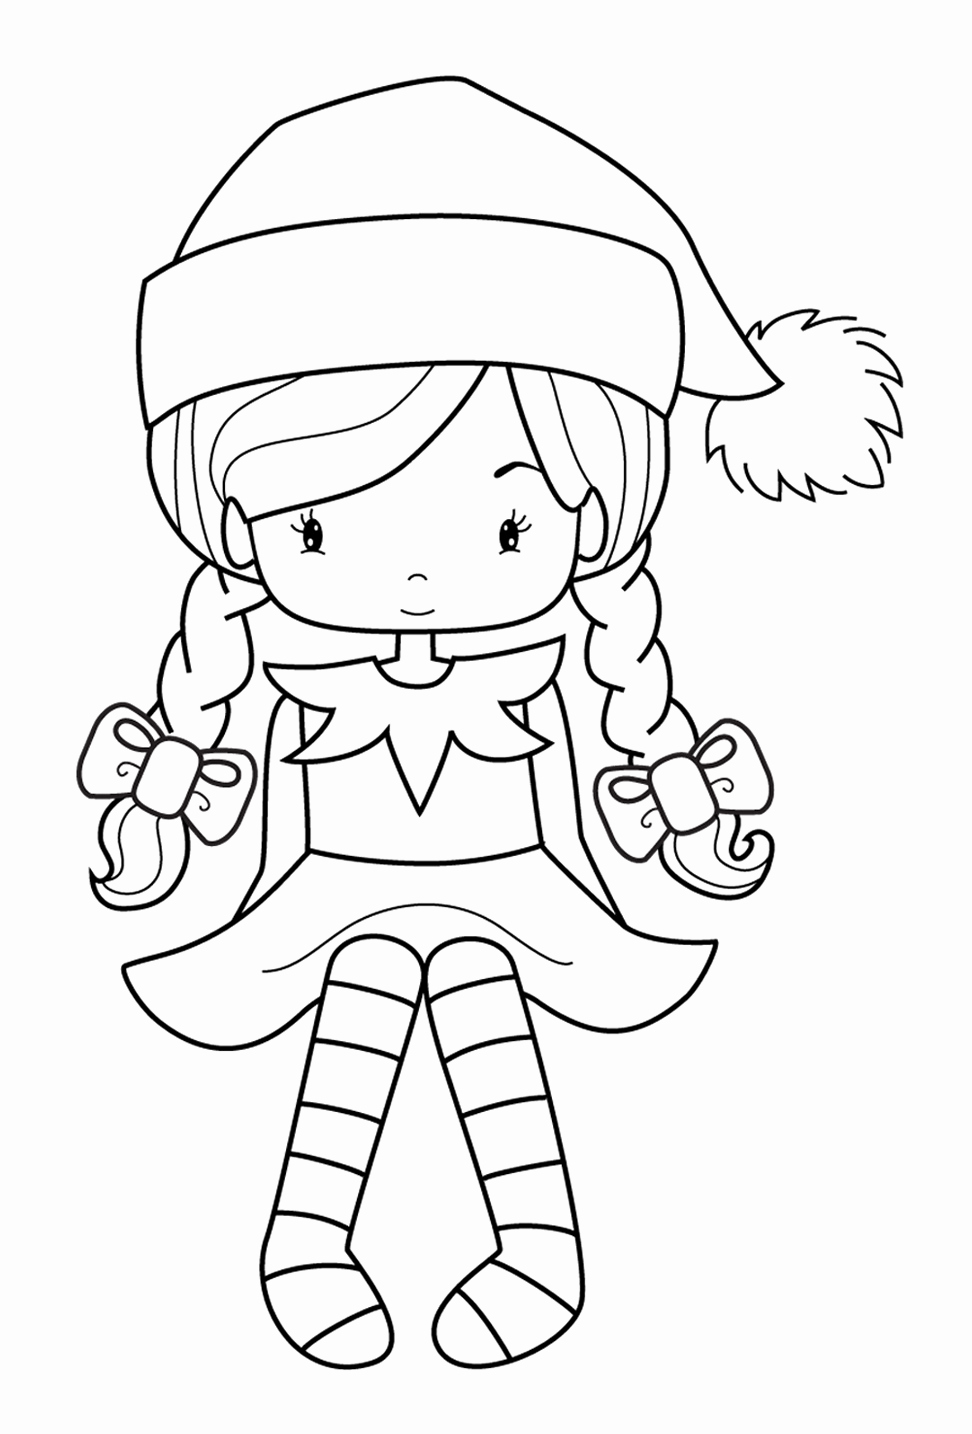 Christmas Elf Coloring Pages Printable With Last Minute Pictures Cool